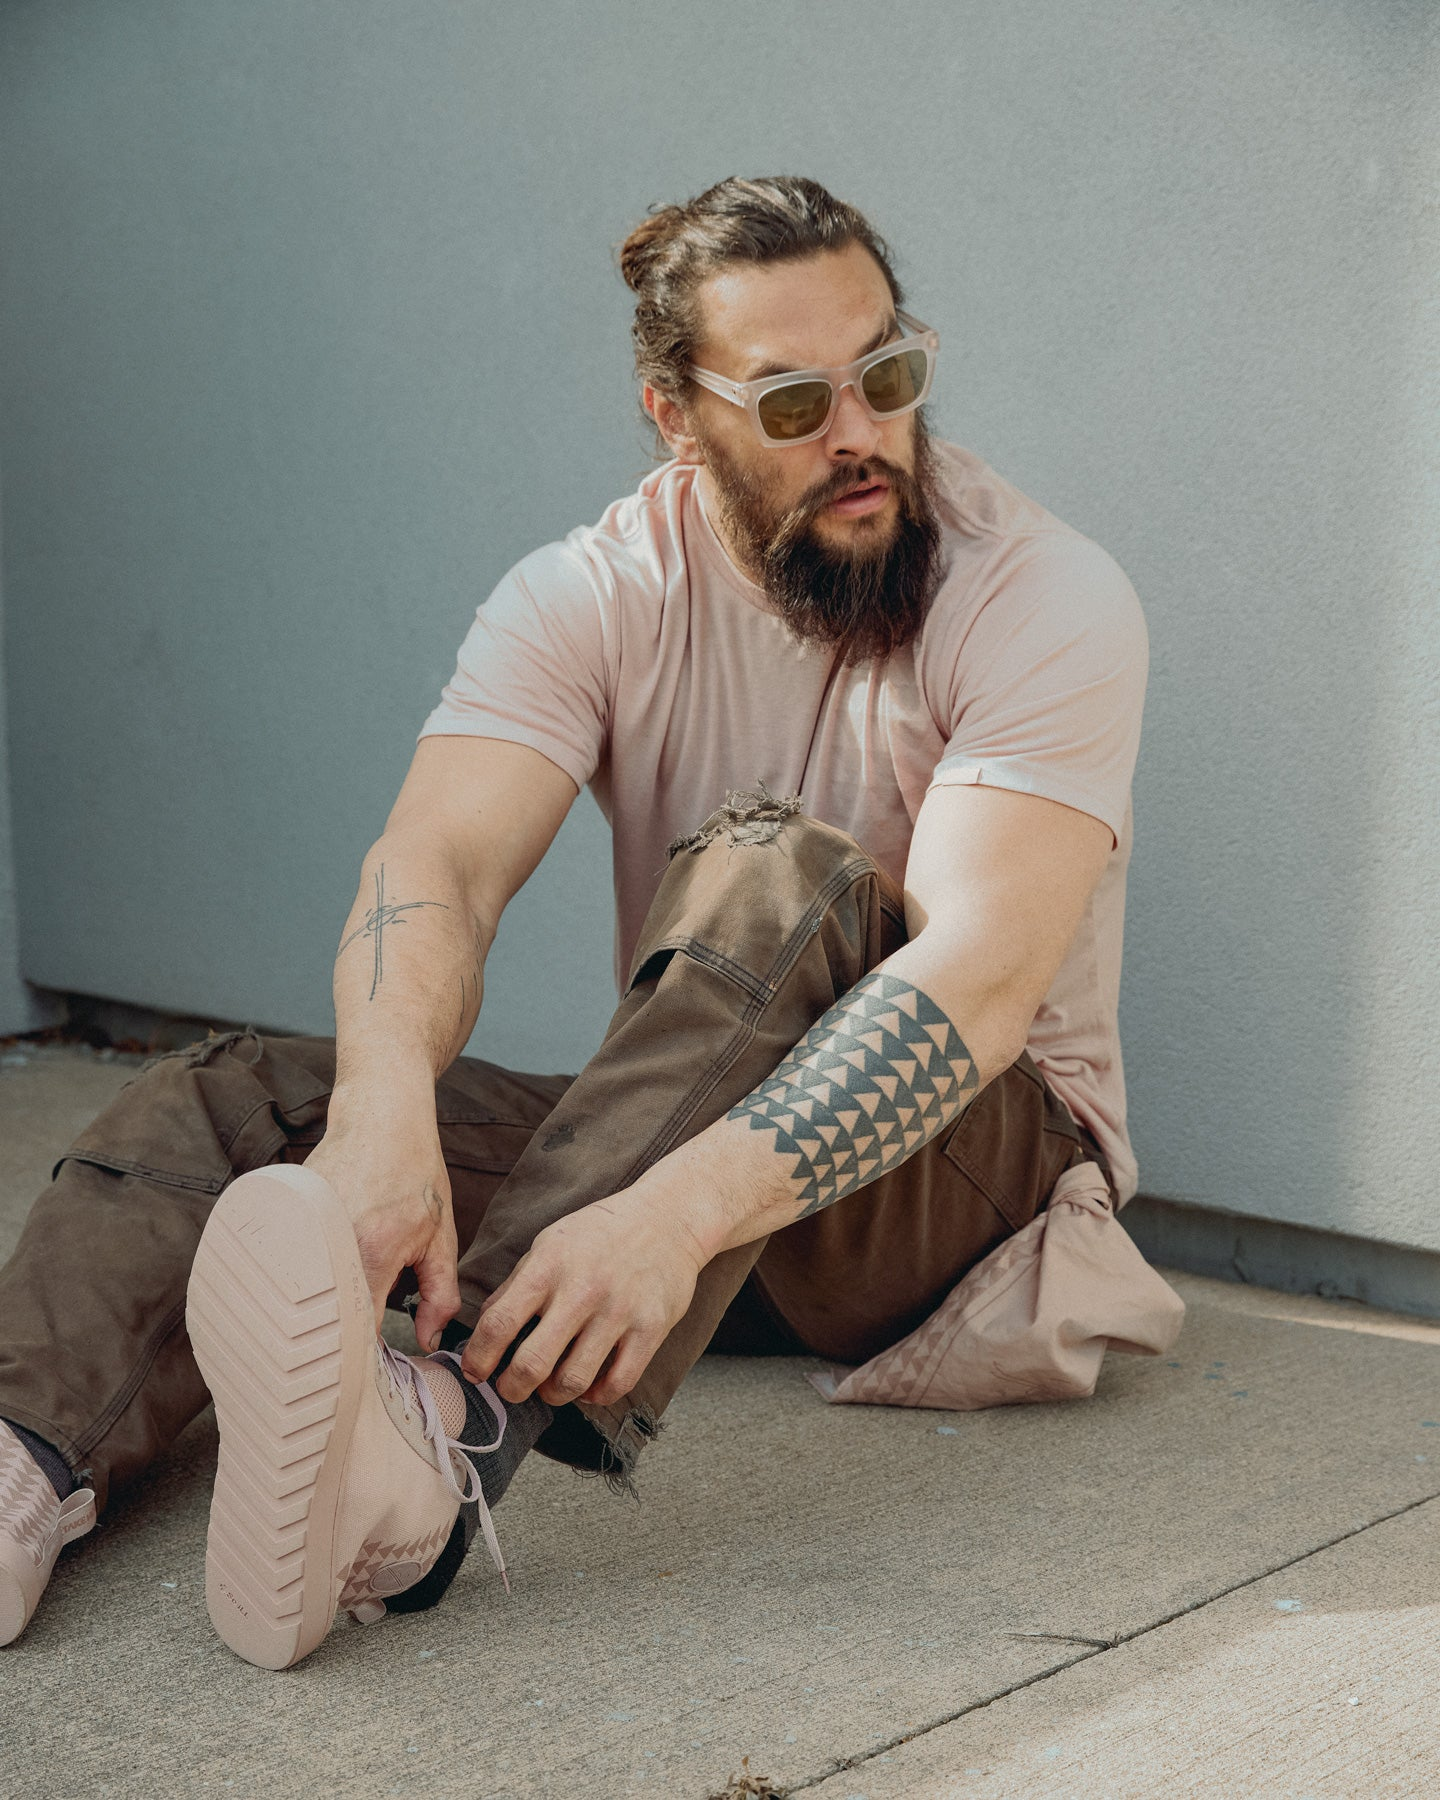 Jason Momoa tries on a pair of So iLL shoes while a bandana hangs from his side